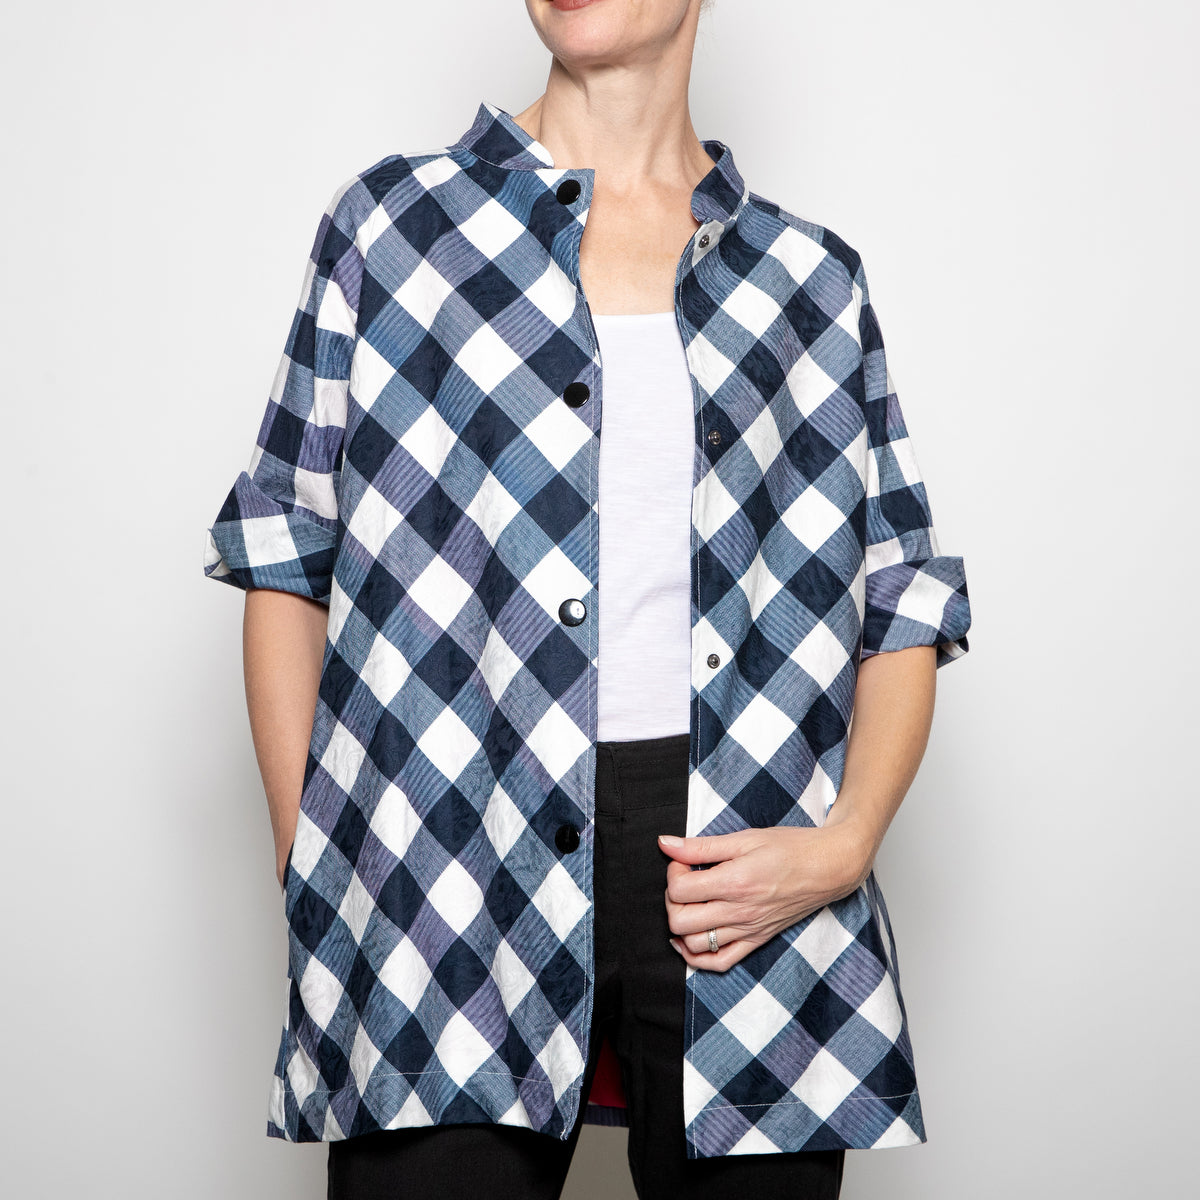 Luii-Navy and White Checkered Coat